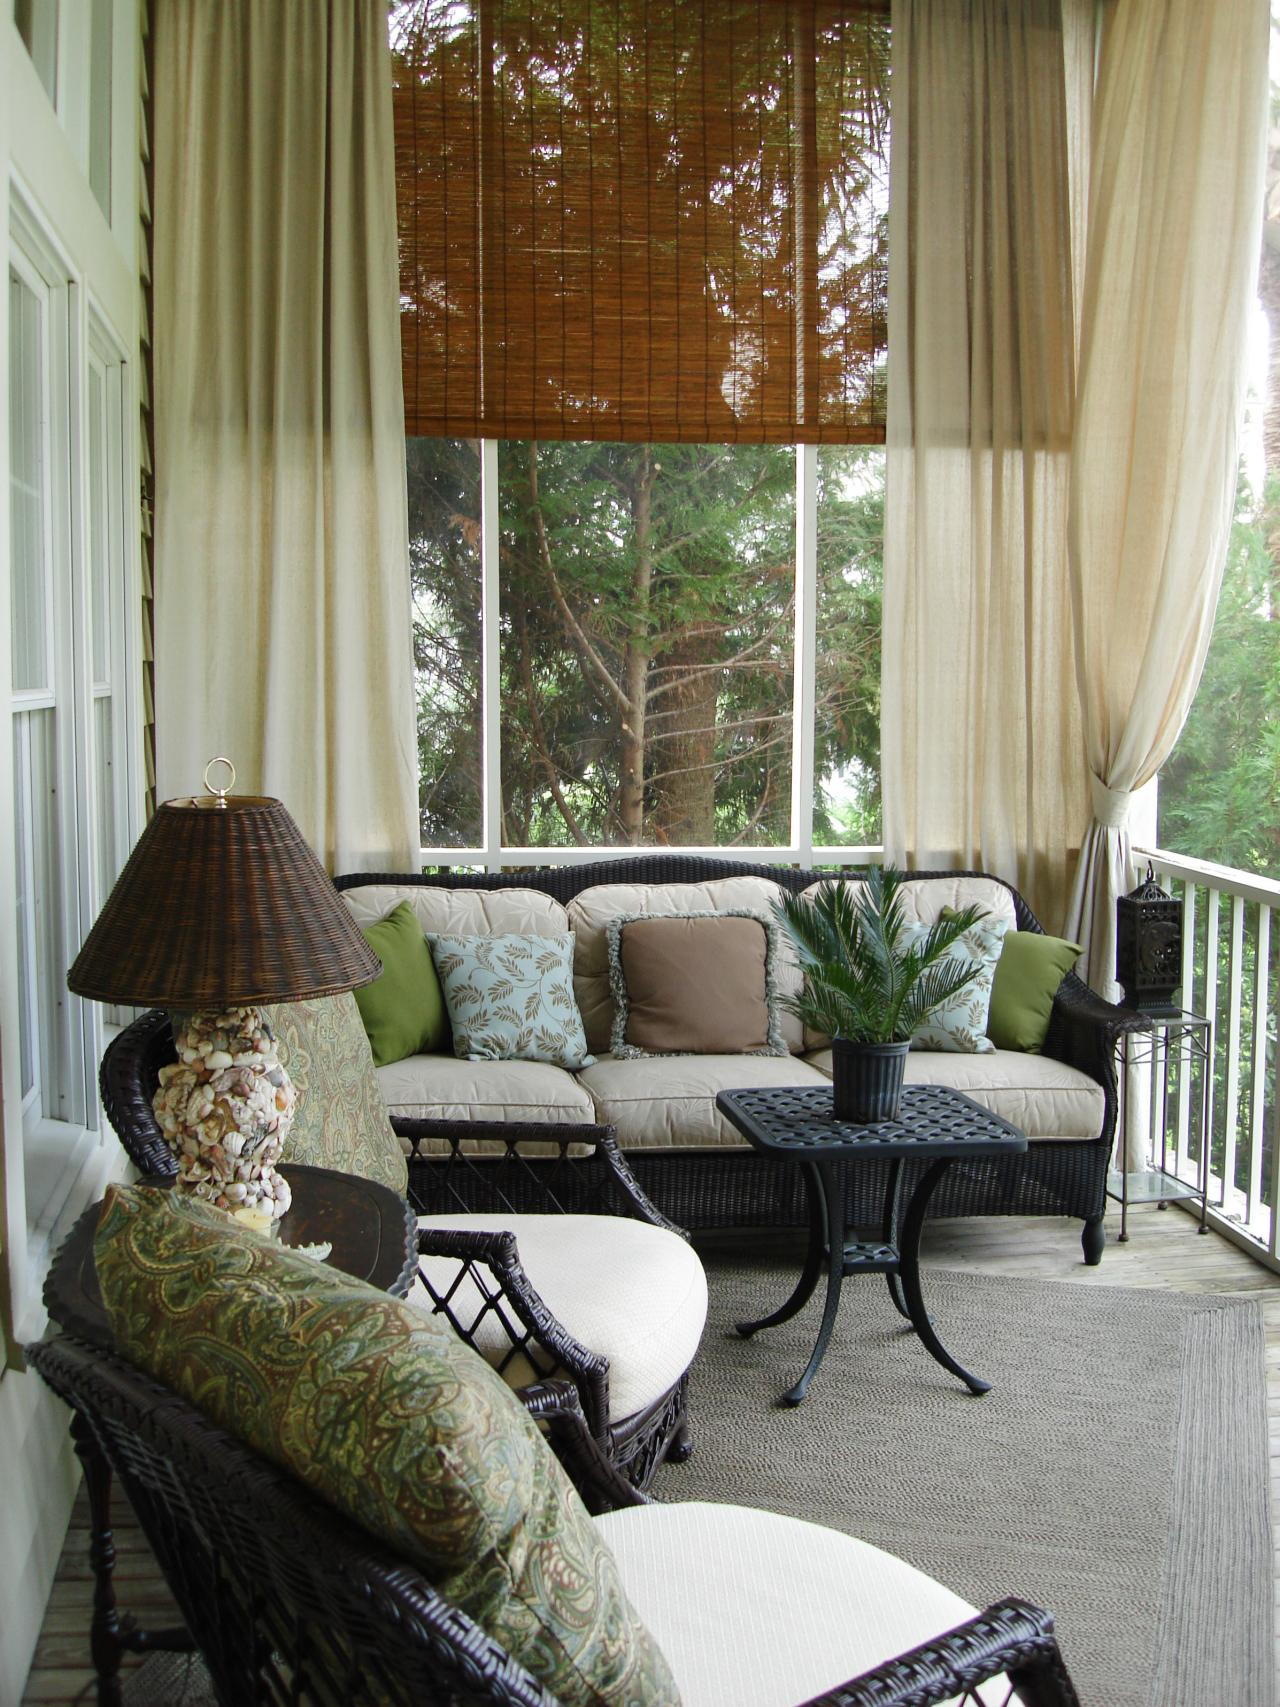 Outdoor decorating ideas outdoor spaces patio ideas for Outdoor front porch decor